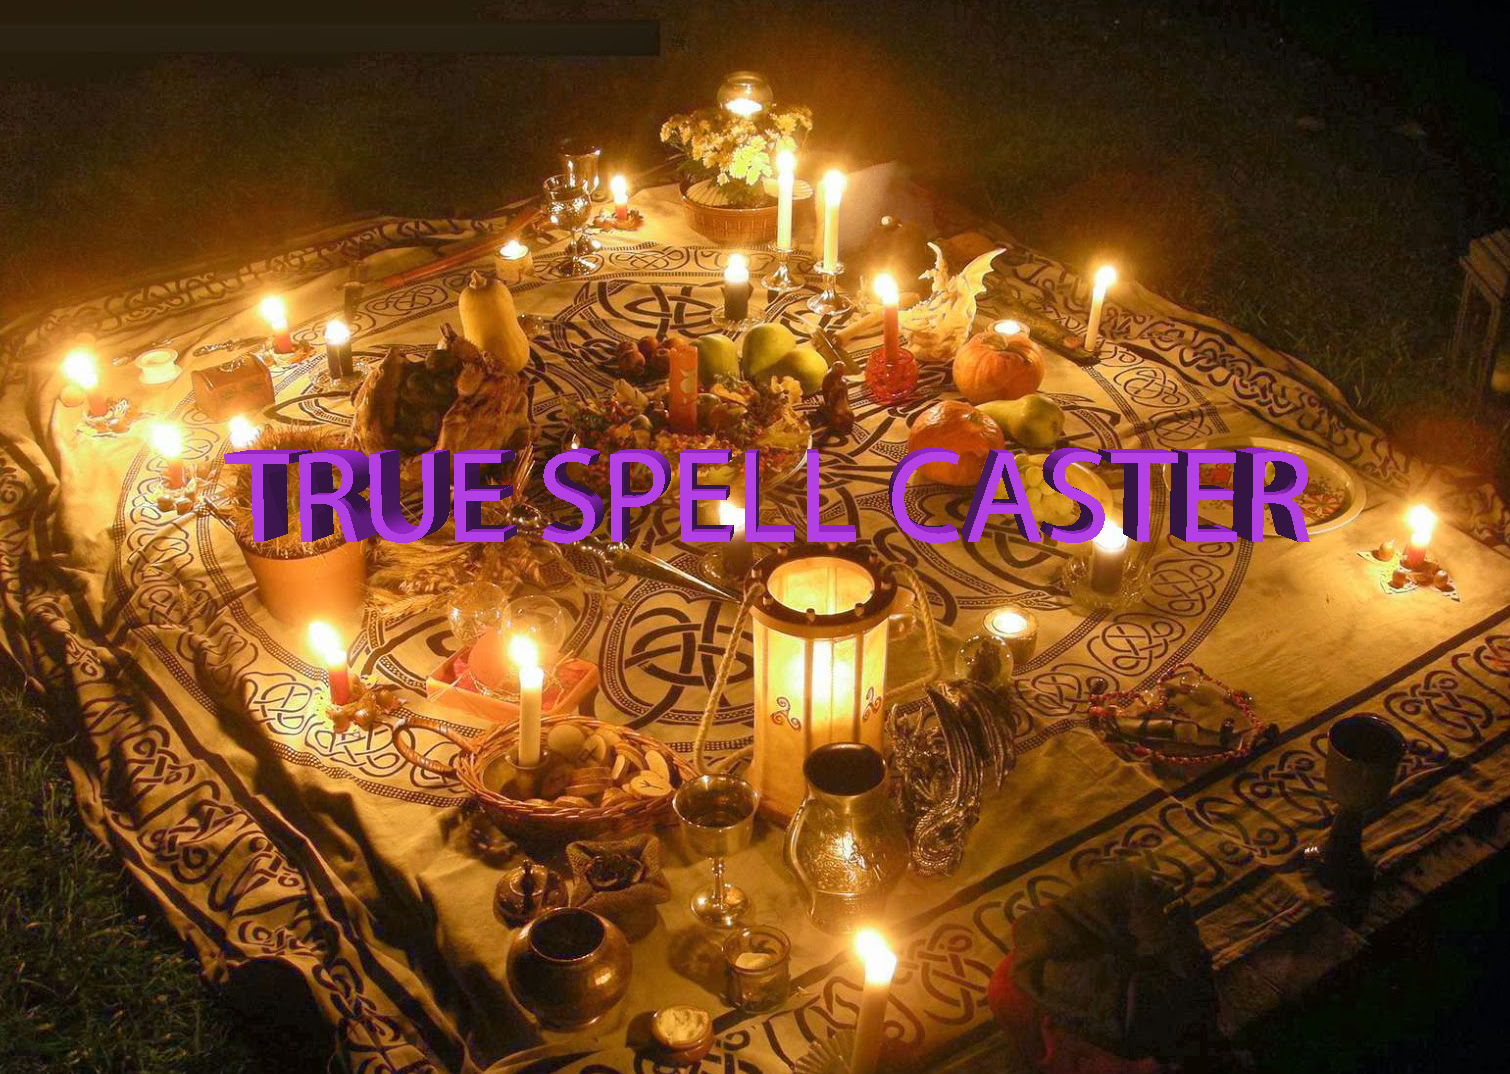 3x CASTING: CAST a ONE hour custom spell for you, Customized spell for situation